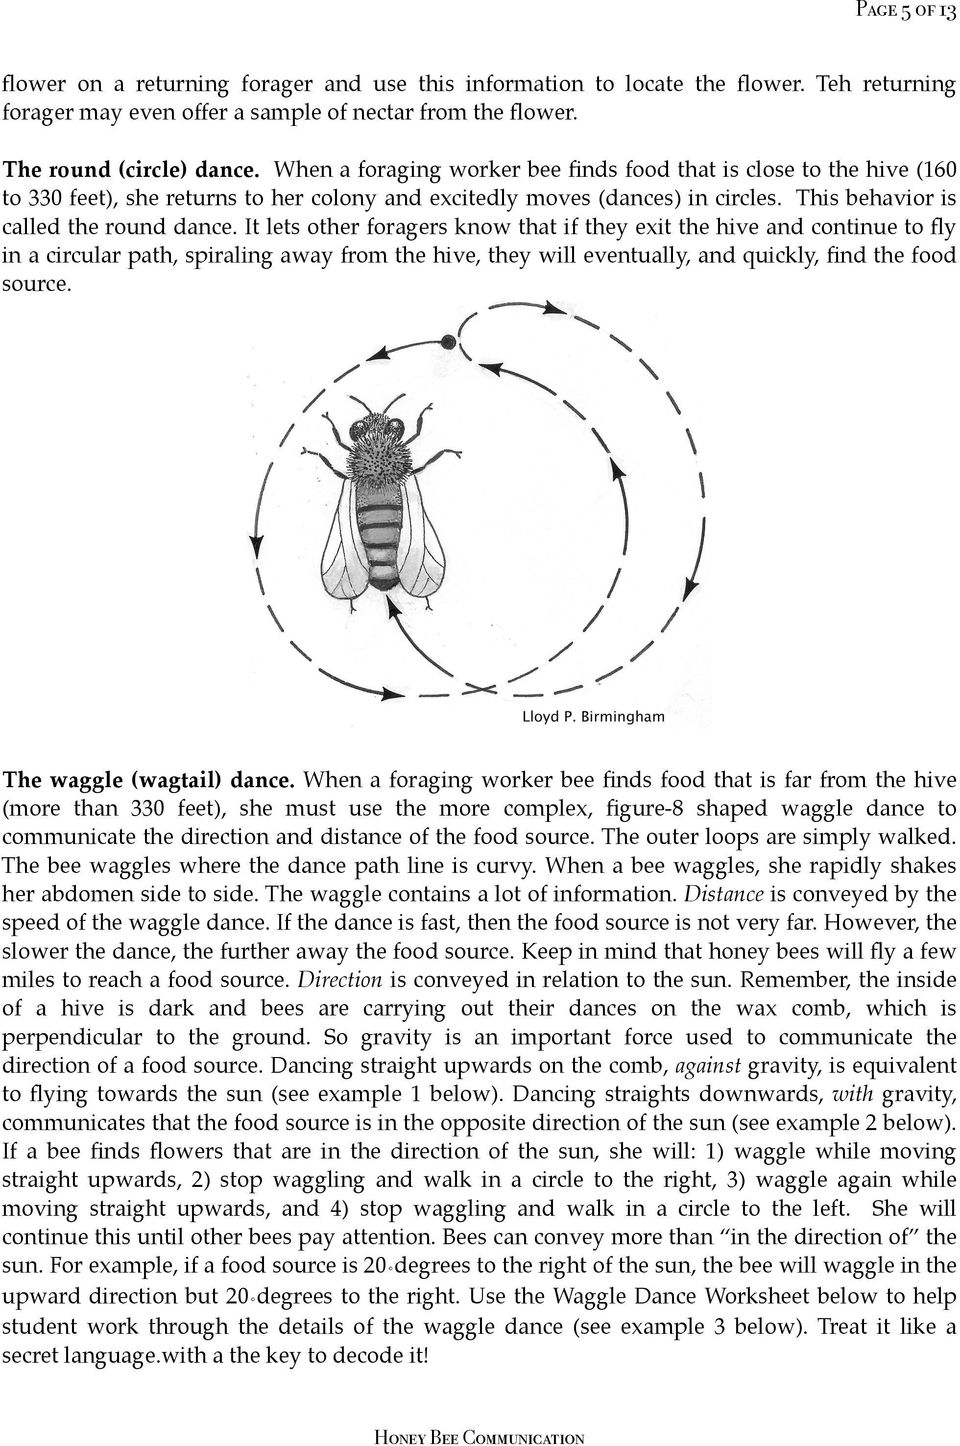 It lets other foragers know that if they exit the hive and continue to fly in a circular path, spiraling away from the hive, they will eventually, and quickly, find the food source.